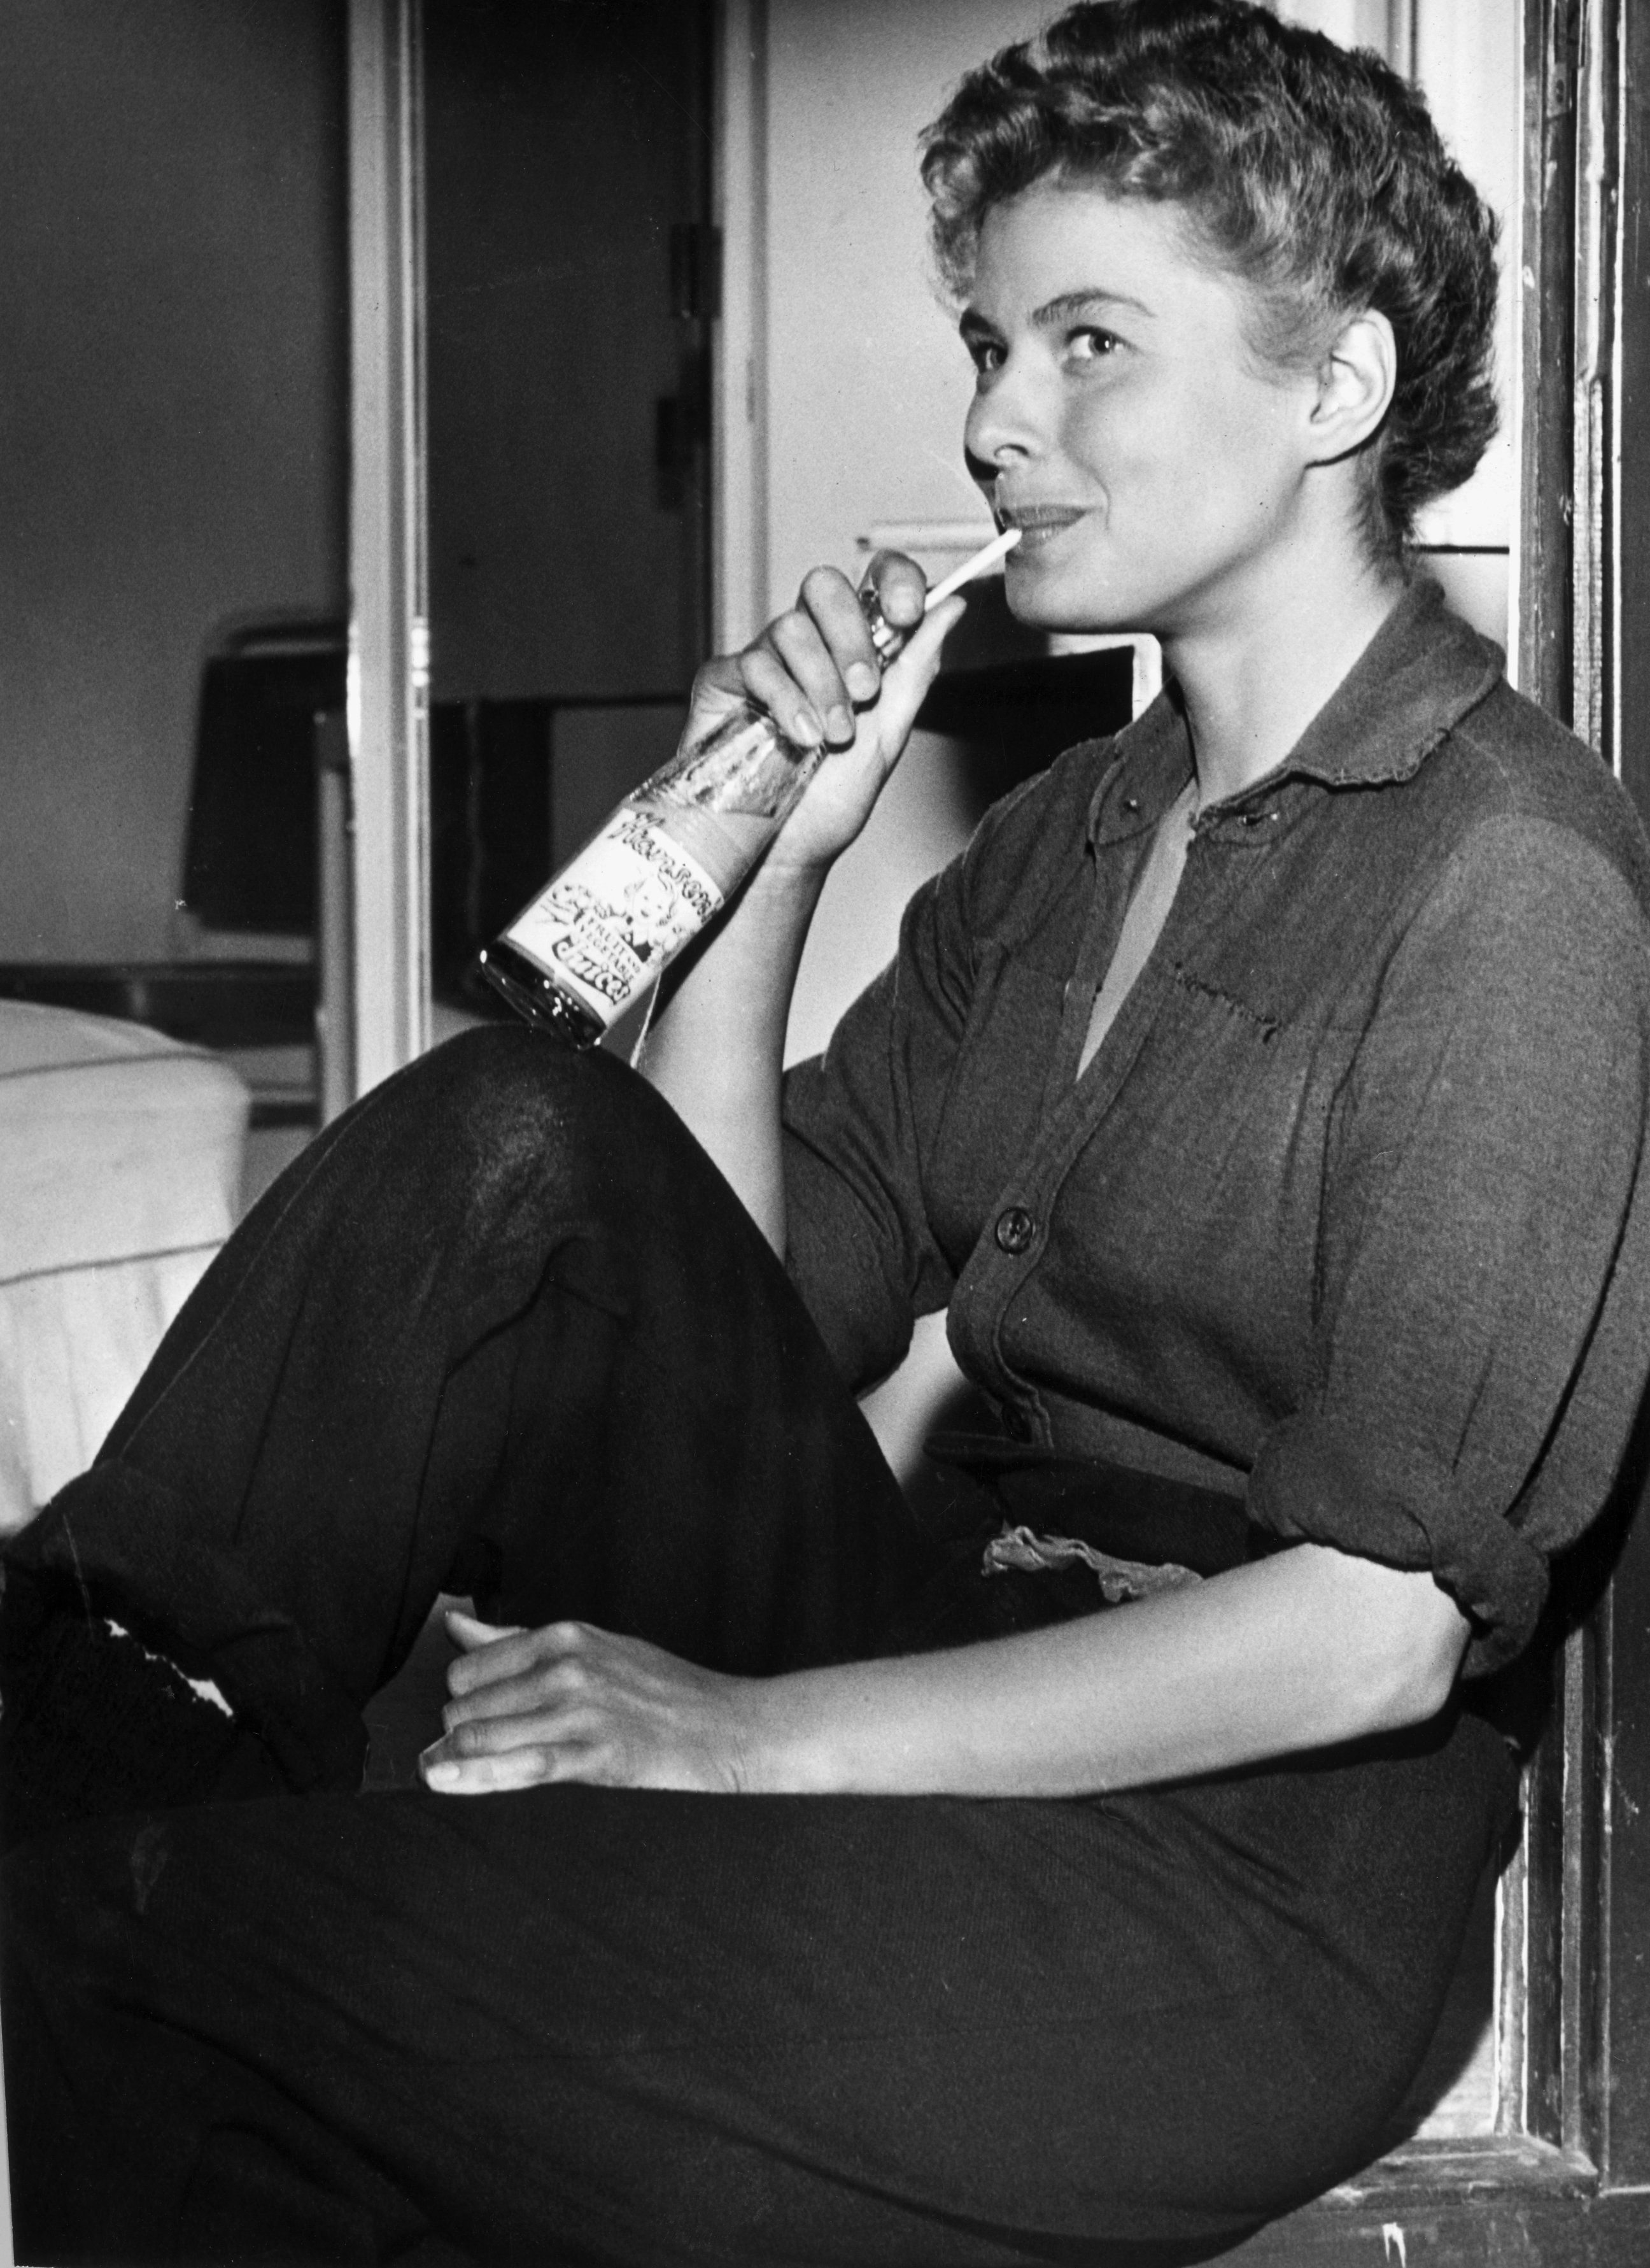 The actress sitting on a window ledge, sipping juice from a glass bottle with a straw, on the set of director Sam Wood's film